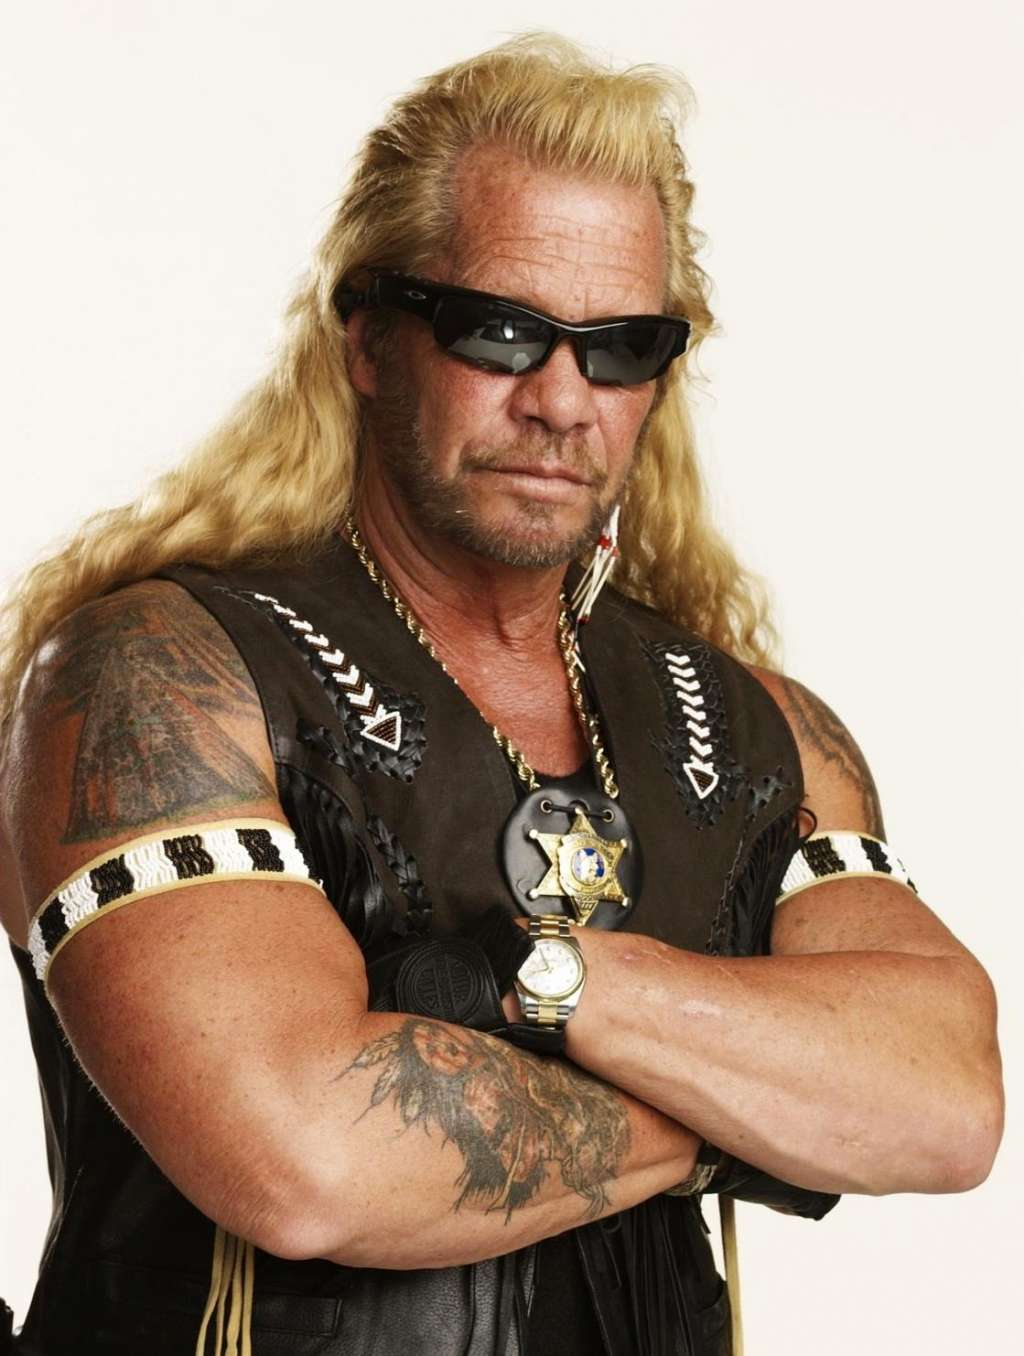 Duane Chapman posing for a photo in his signature out fit